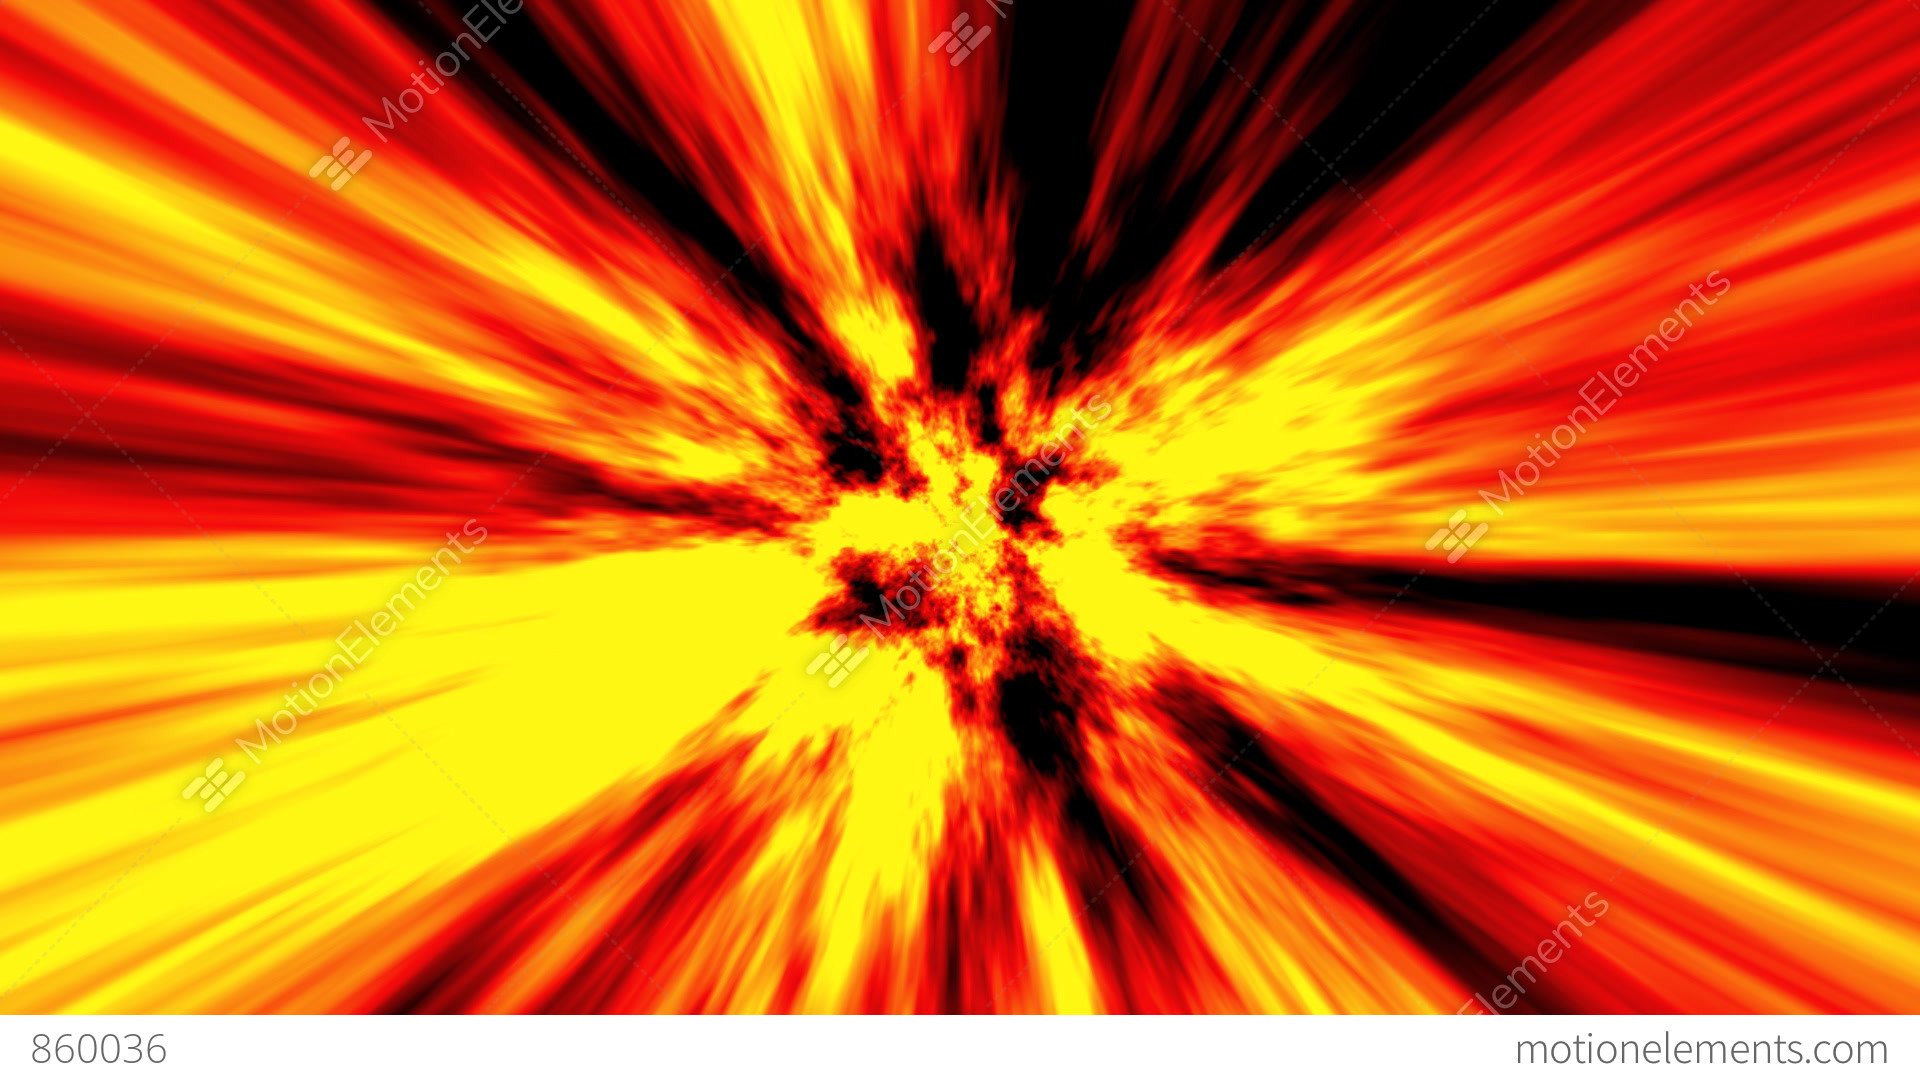 animated fire background stock animation | 860036, Powerpoint templates